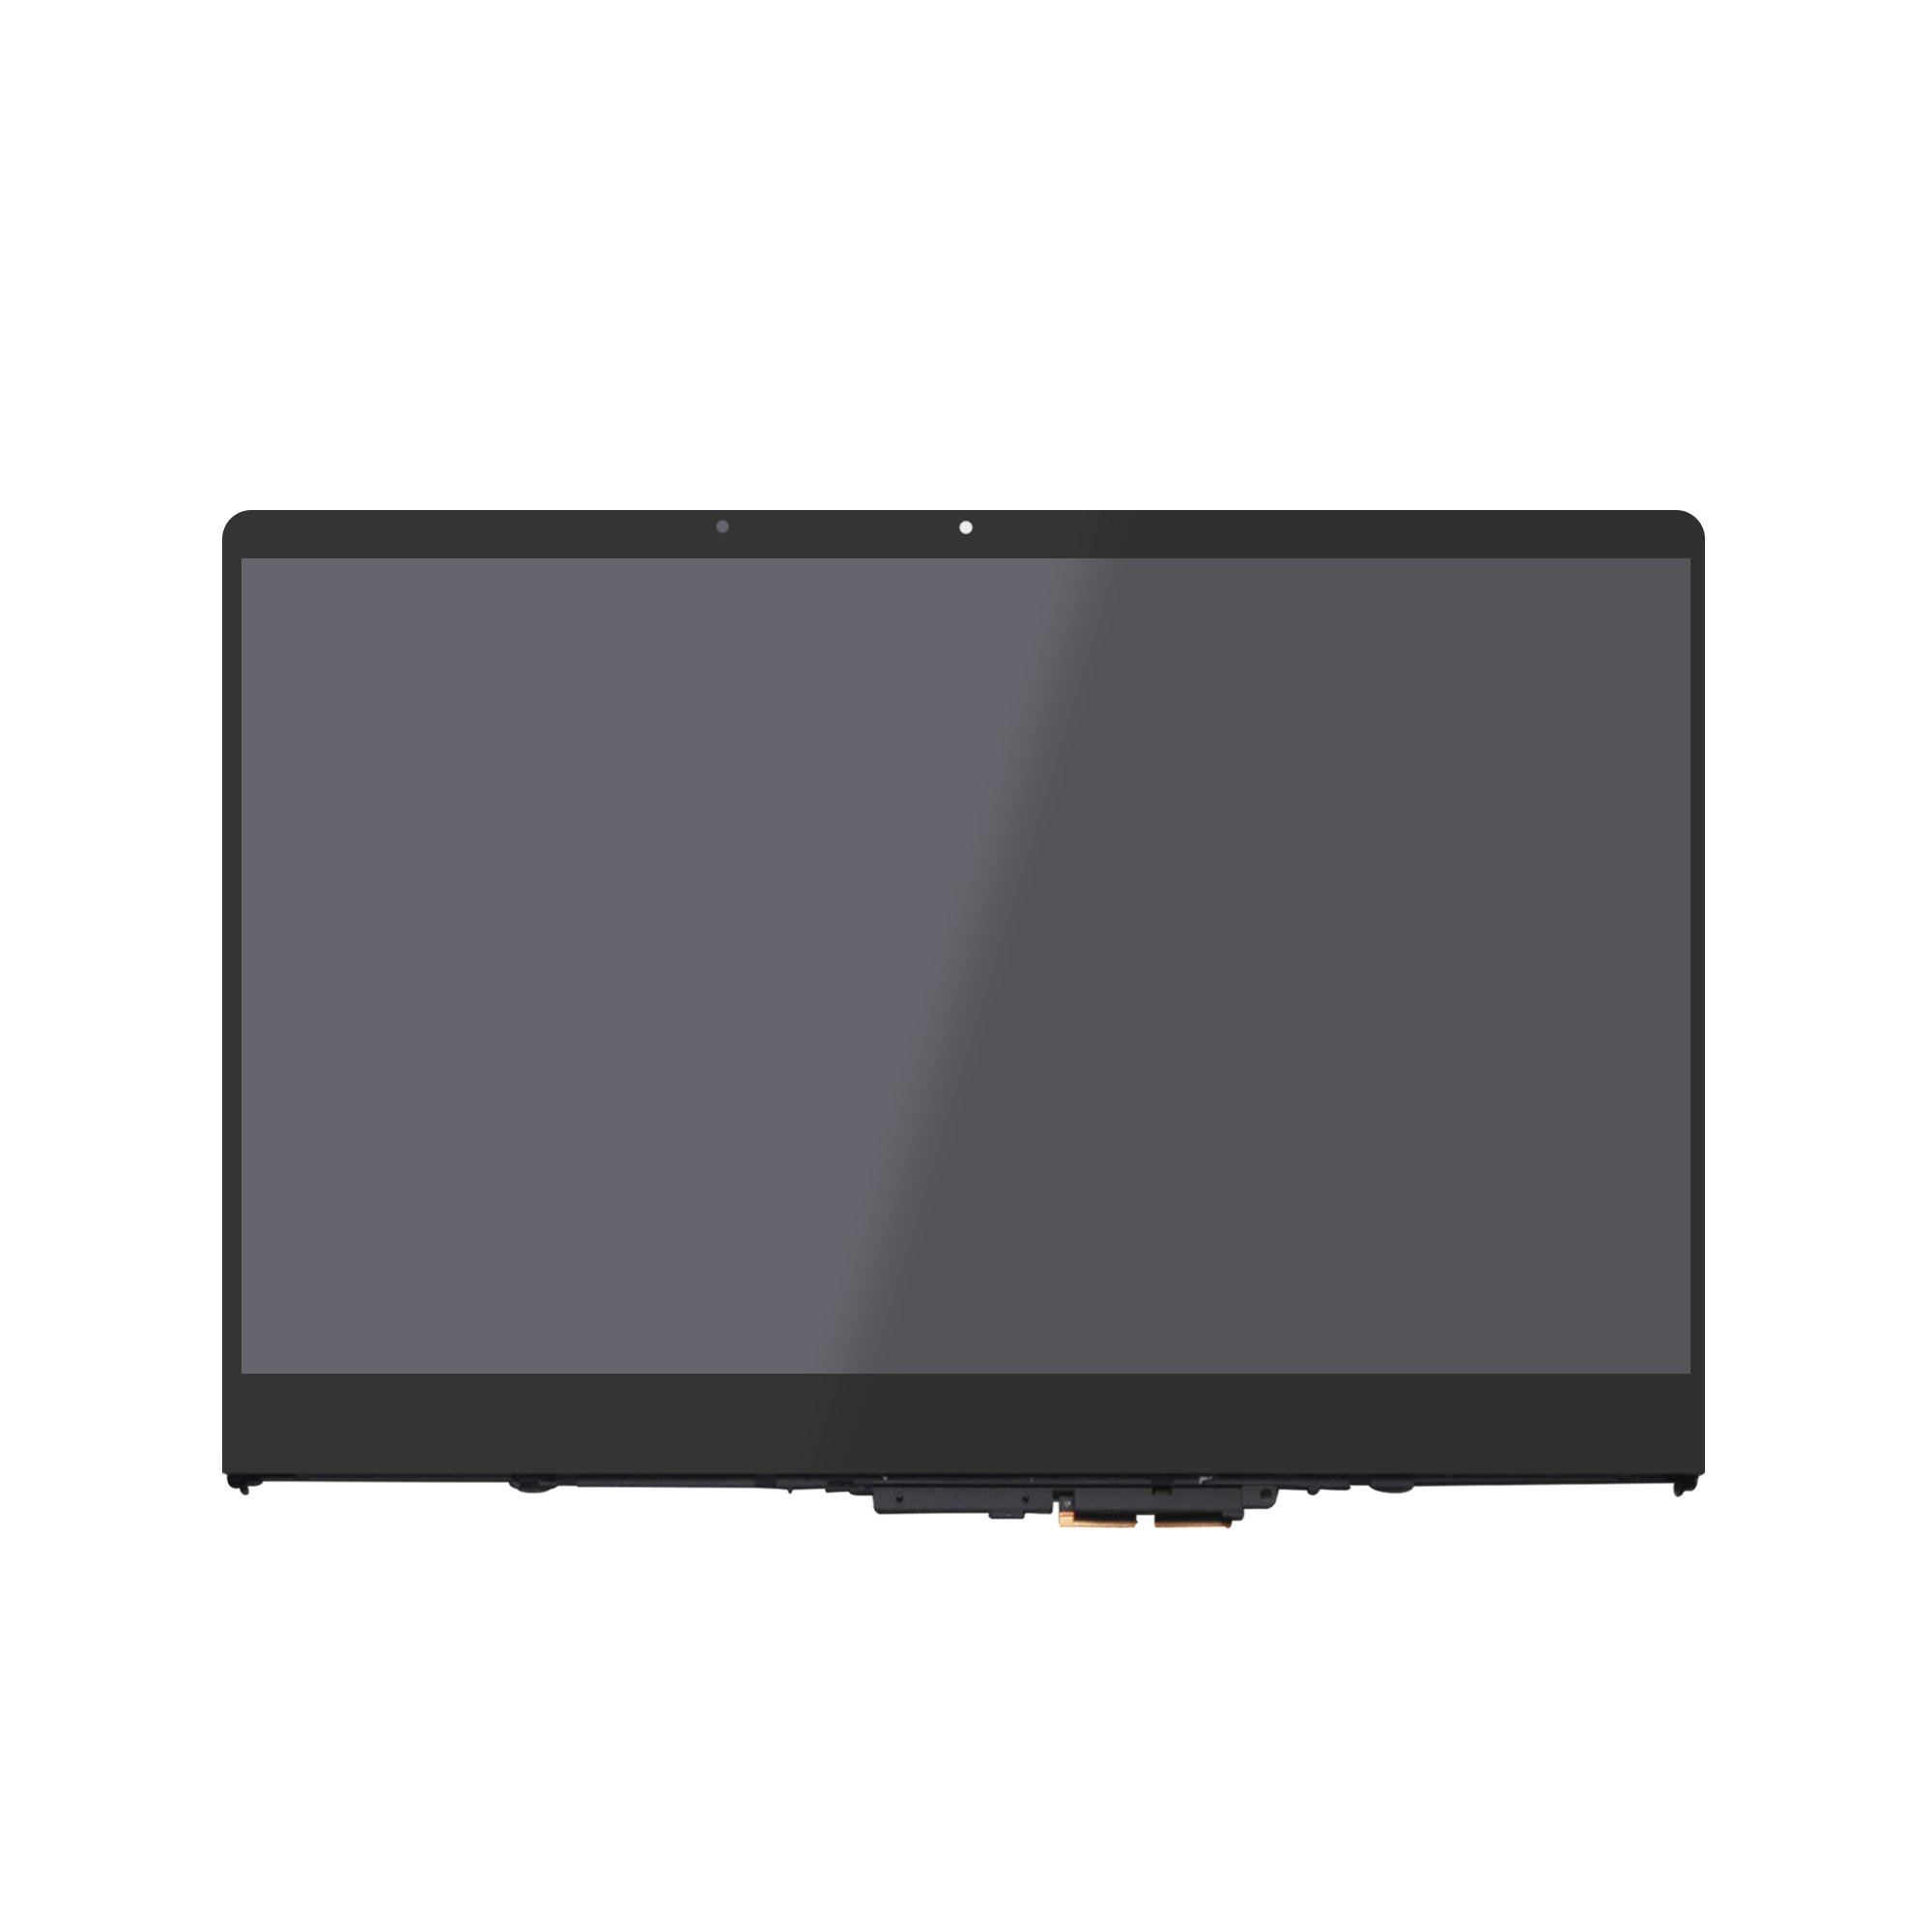 LCDOLED 15.6 inch FullHD 1080P N156HCA-EA1 IPS LCD Display Touch Screen Digitizer Assembly + Bezel for Lenovo Yoga 710 710-15ISK 710-15IKB 80U0 80V5 5TD50K85364 5D10K81093 (NOT for Screen LP156WFA) by LCDOLED (Image #1)